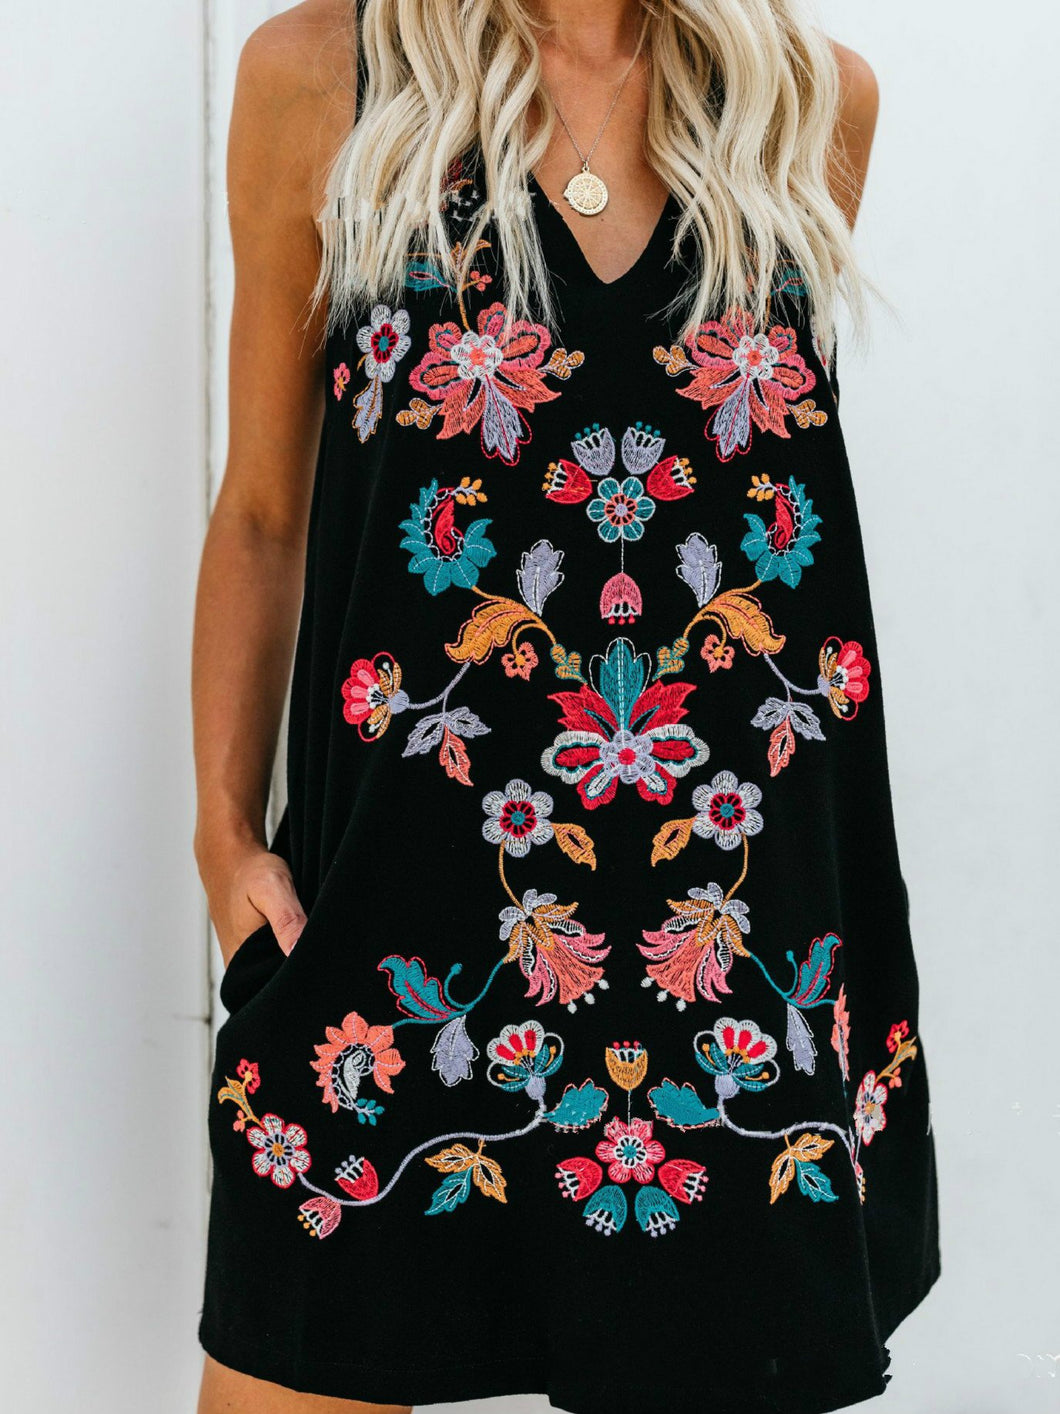 Handmade Embroidered Sleeveless Round Collar A-shaped Dress Dress